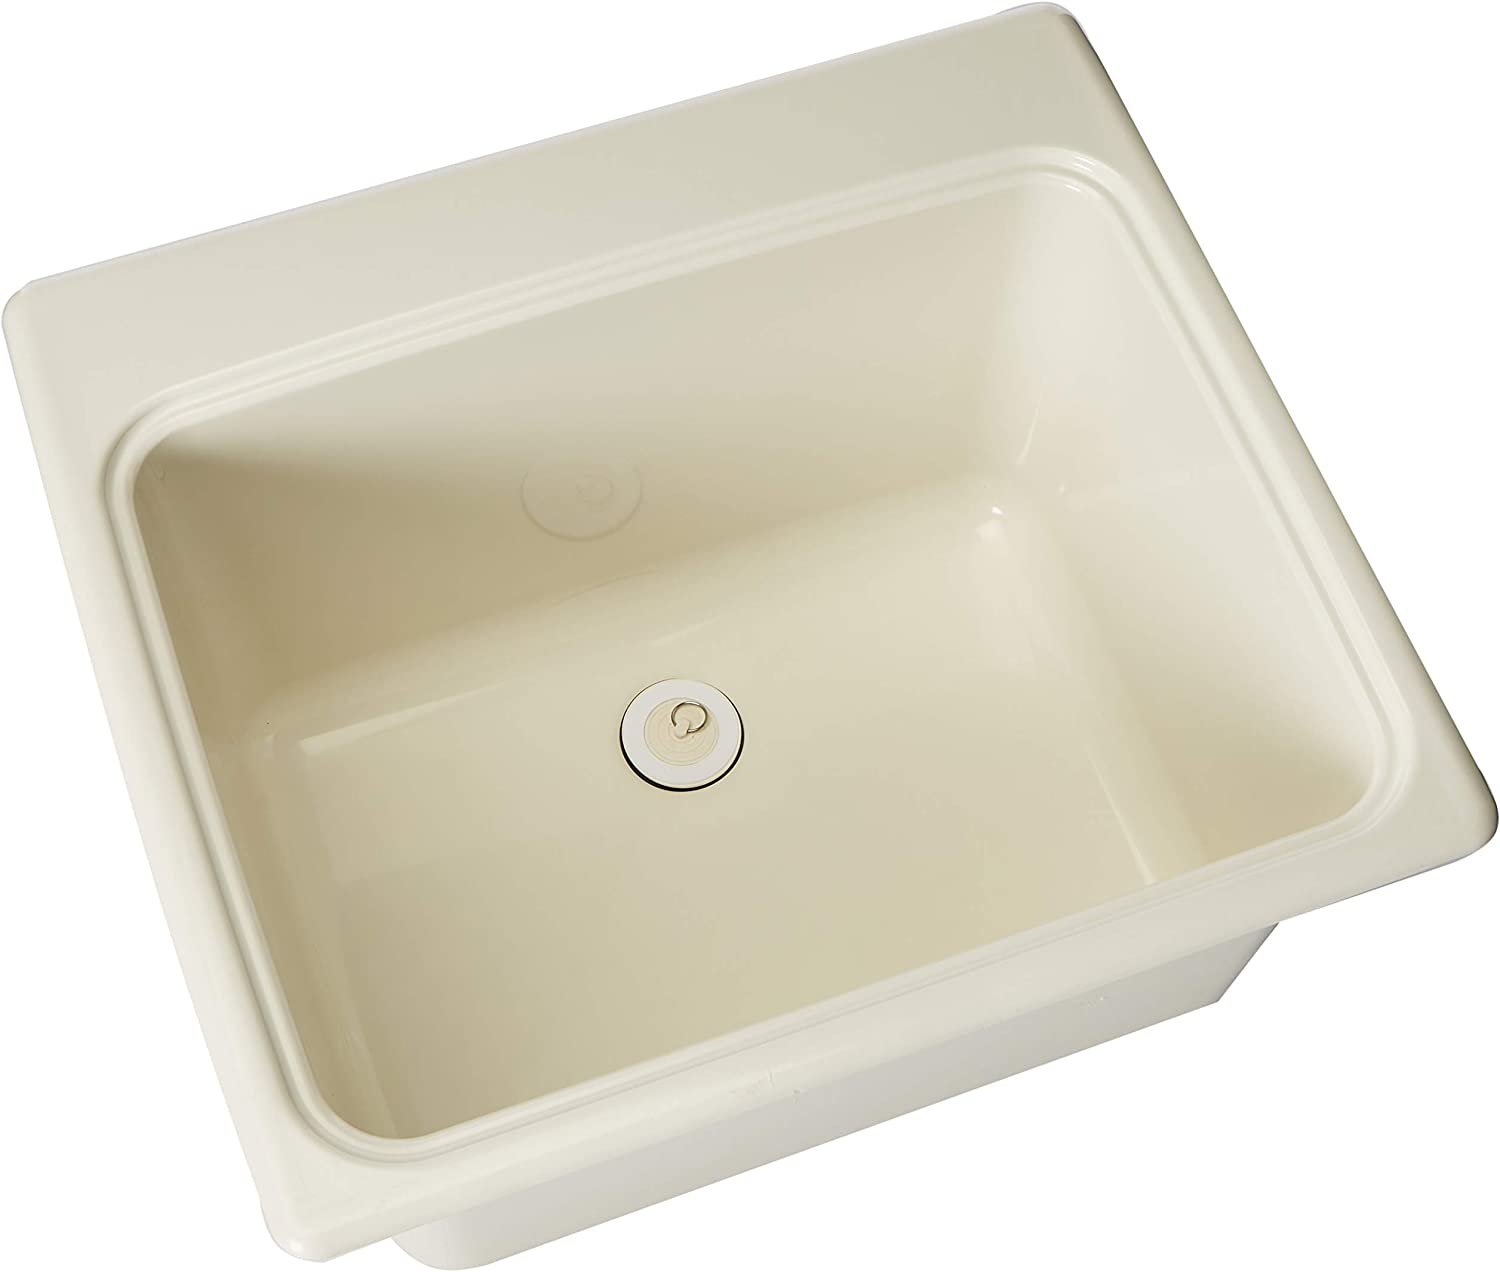 "Swan SSUS1000.018 Dual Mount Solid Surface Utility Sink-Bisque, 22"" L x 25"" H x 13.5625"" H"